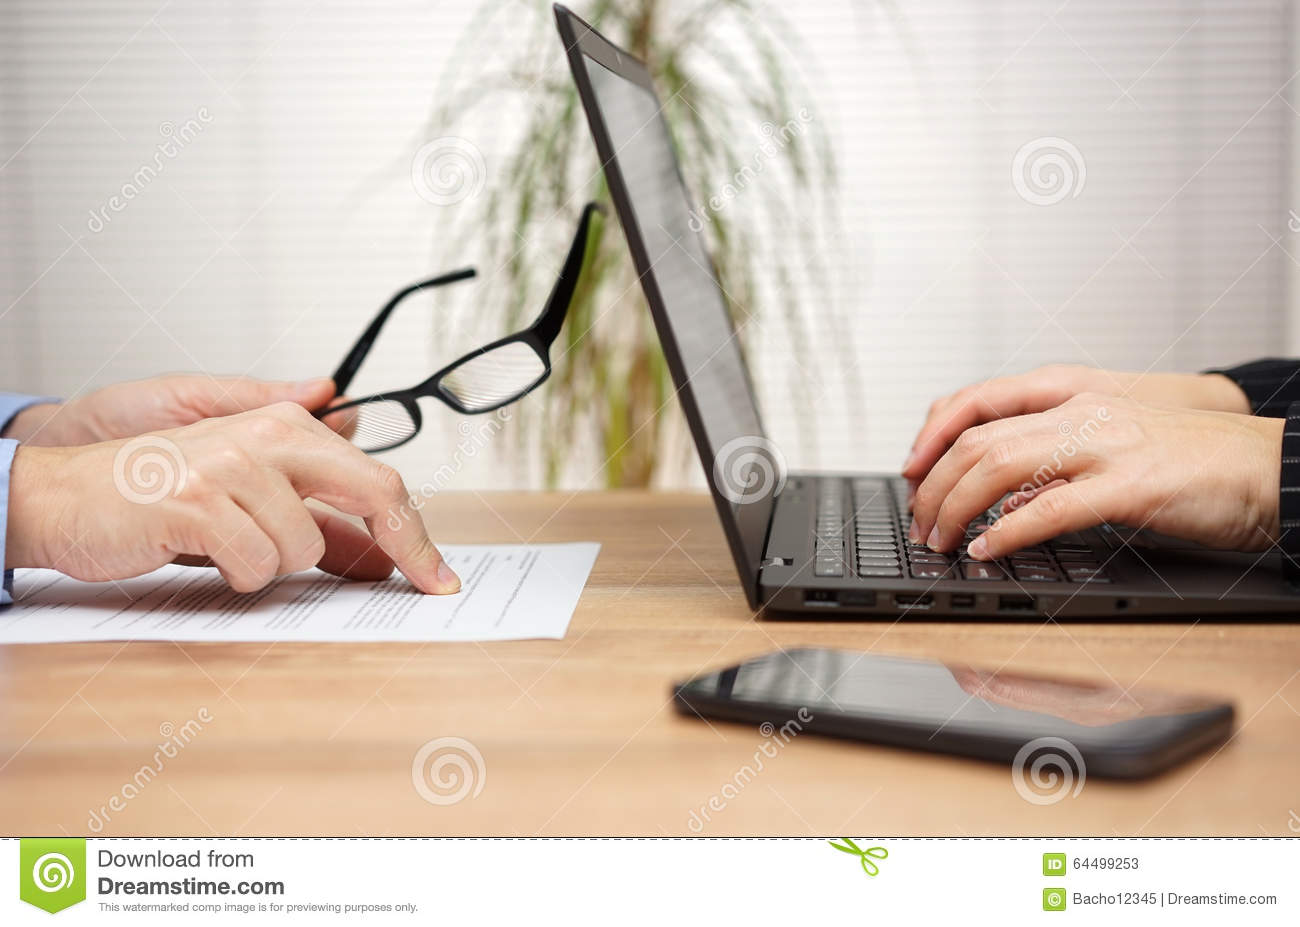 two partners are examining and reviewing document in office, woman is using laptop for comments